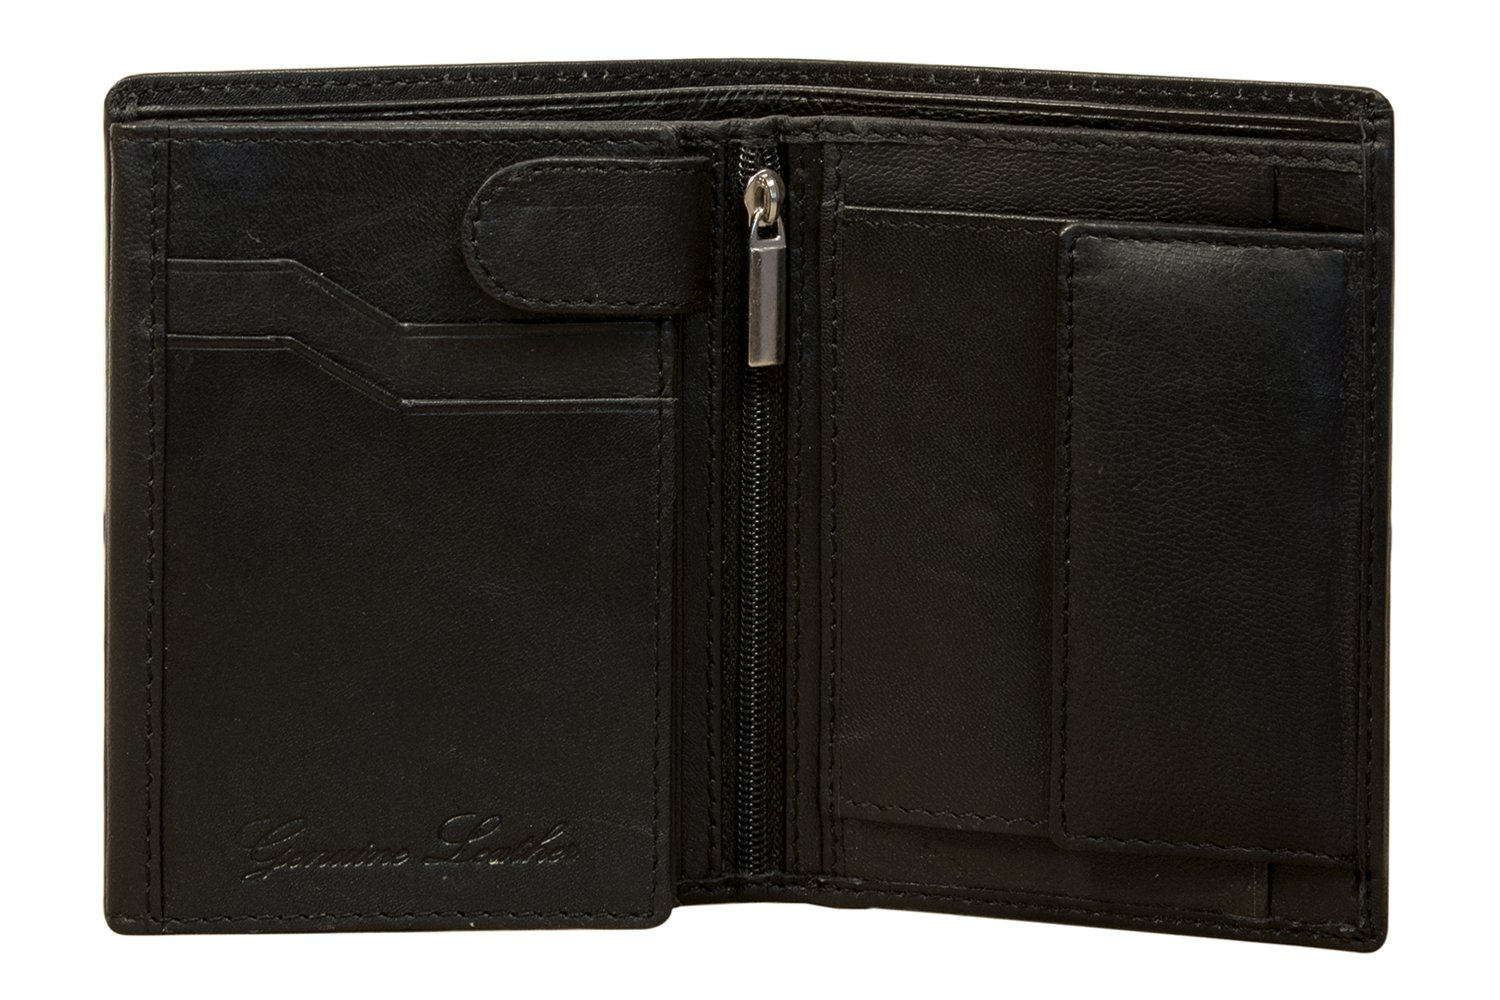 Sakkas UniSex Authentic Leather Tri-Fold Wallet with 9 Credit Card Slots with Gift Bag - Black